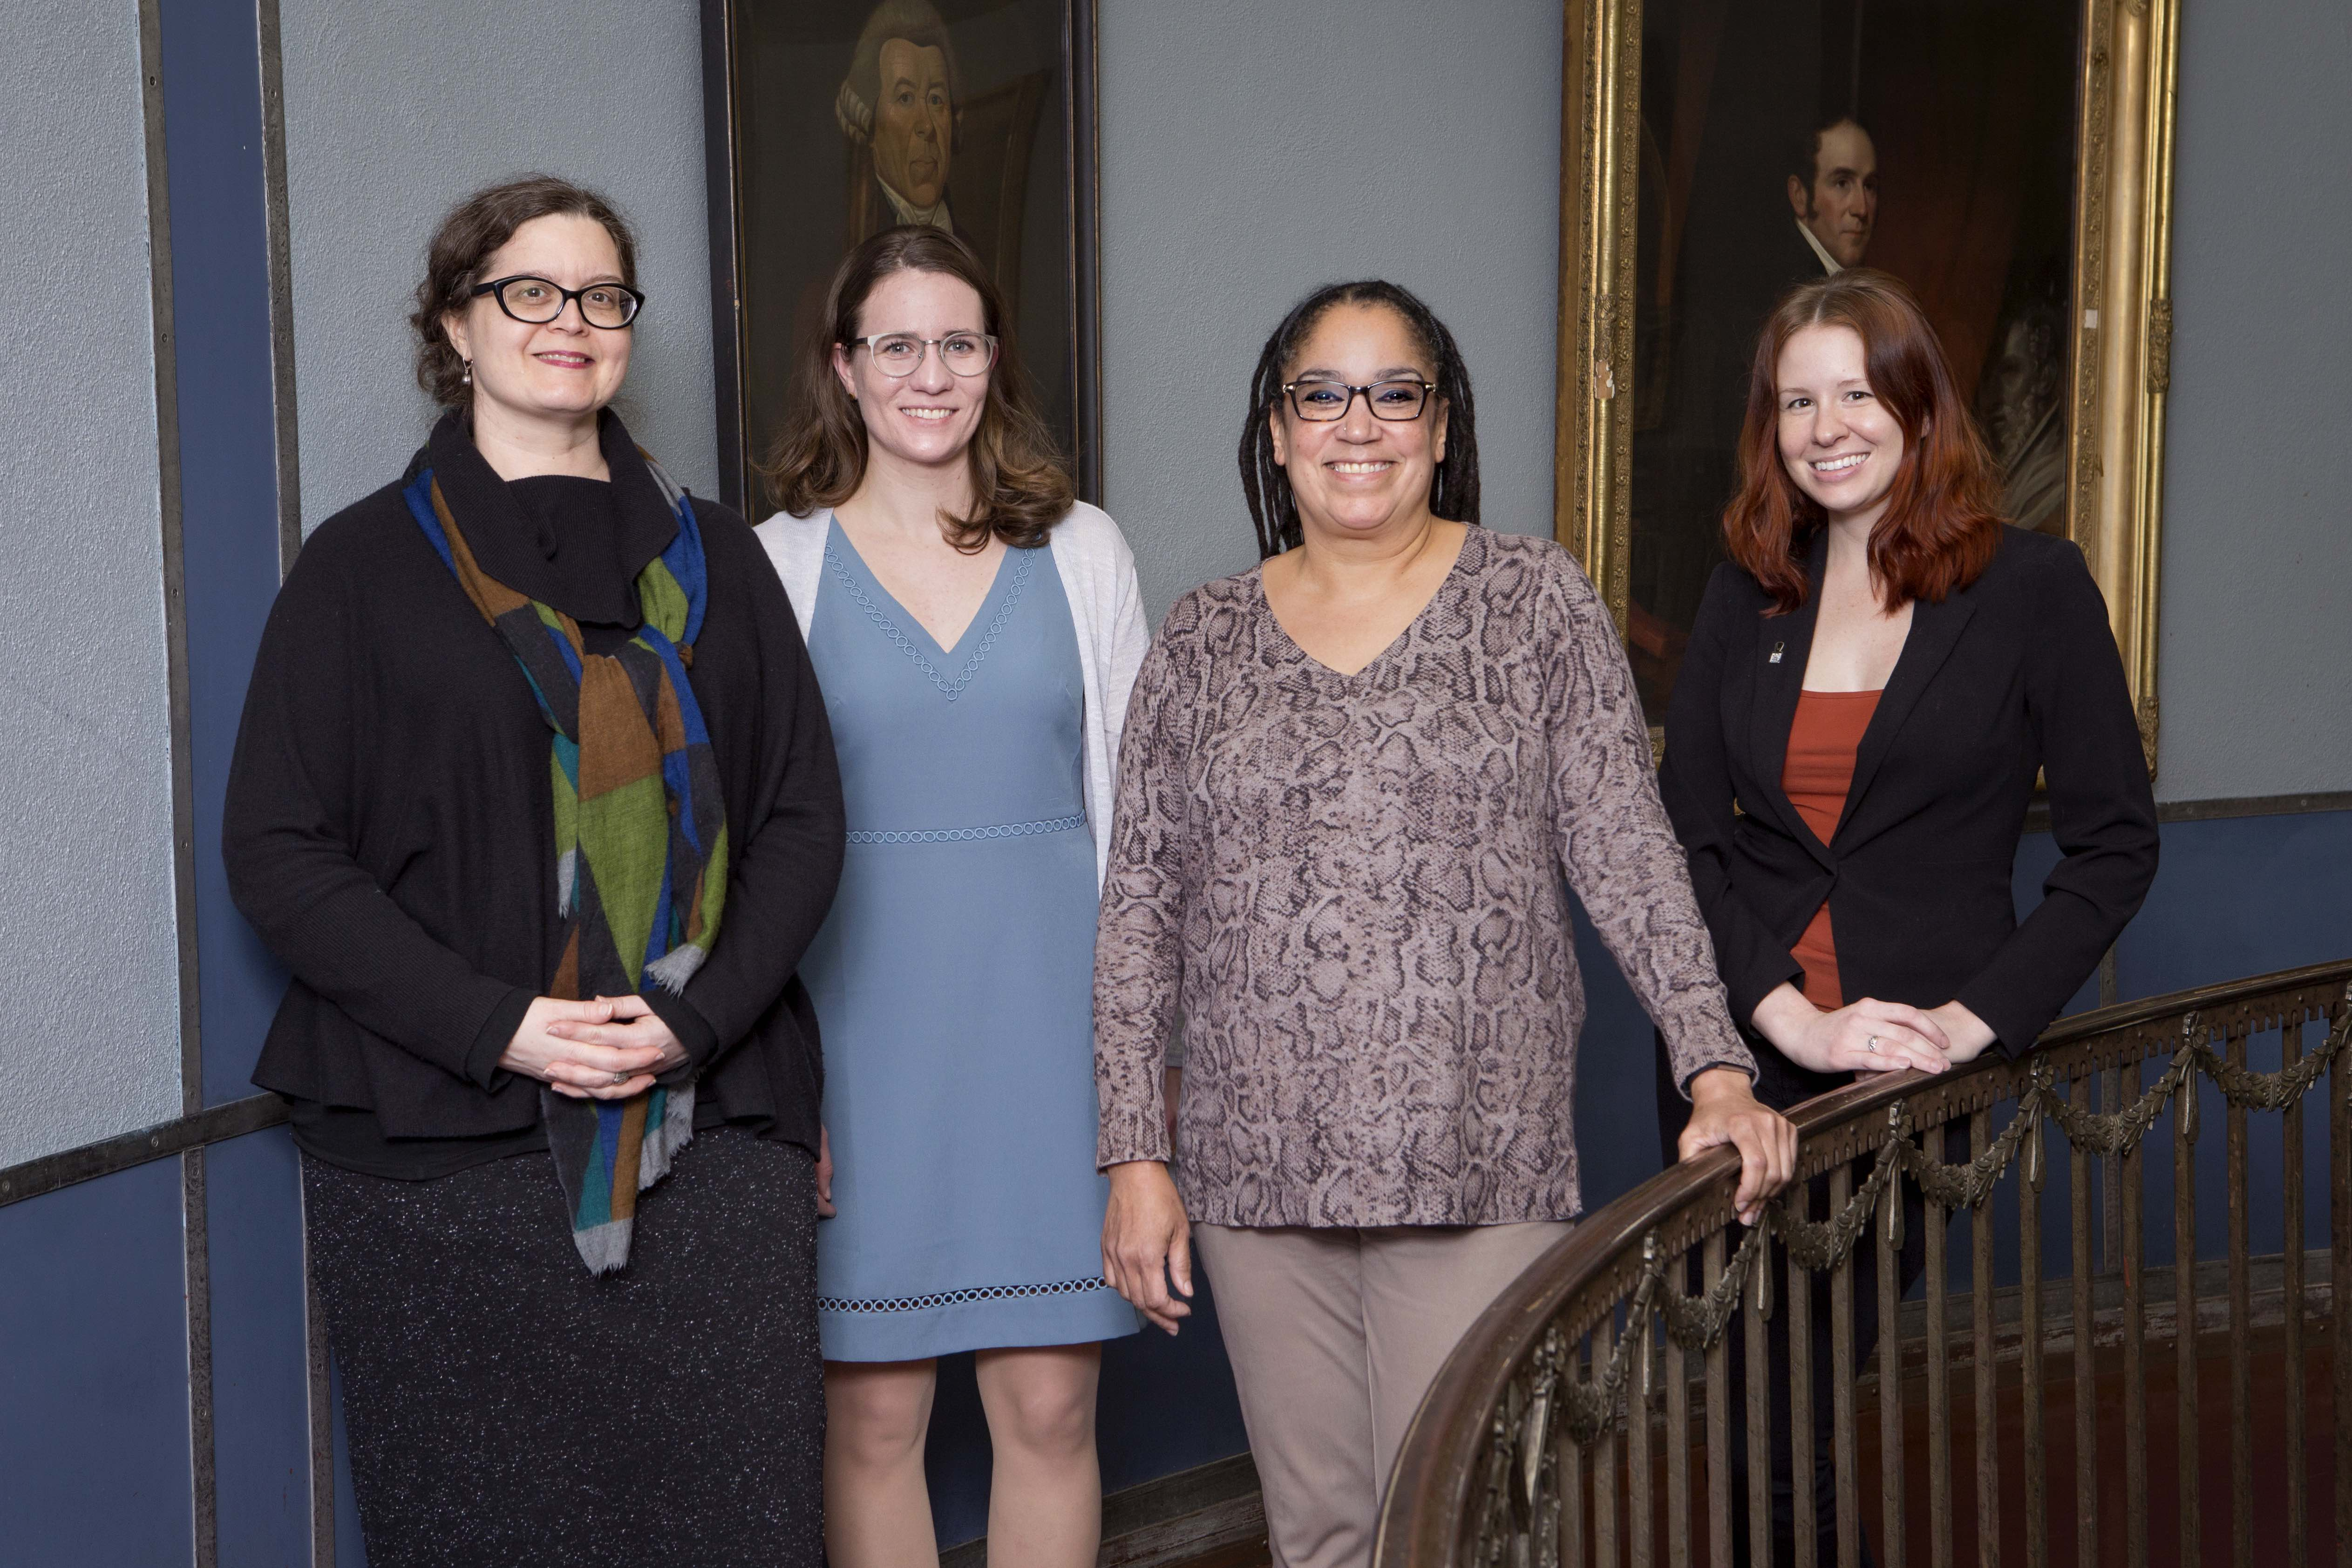 New staff: Kathi Isham, Sawyer Newman, Lisa Sanders, and Dana Haugh